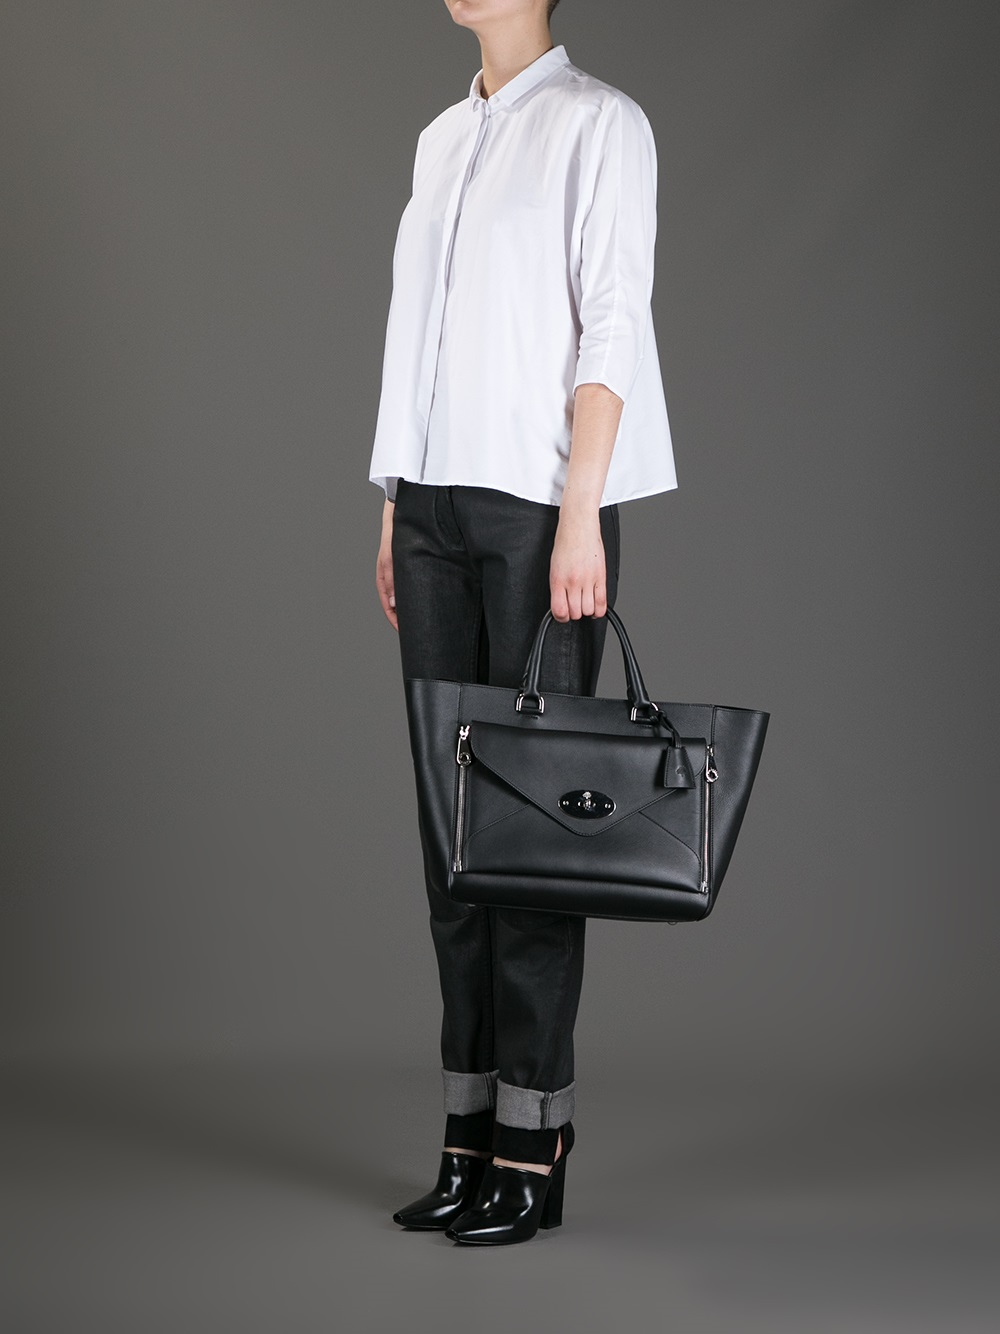 8a0a5150b8 ... shop lyst mulberry willow tote bag in black 45865 867d0